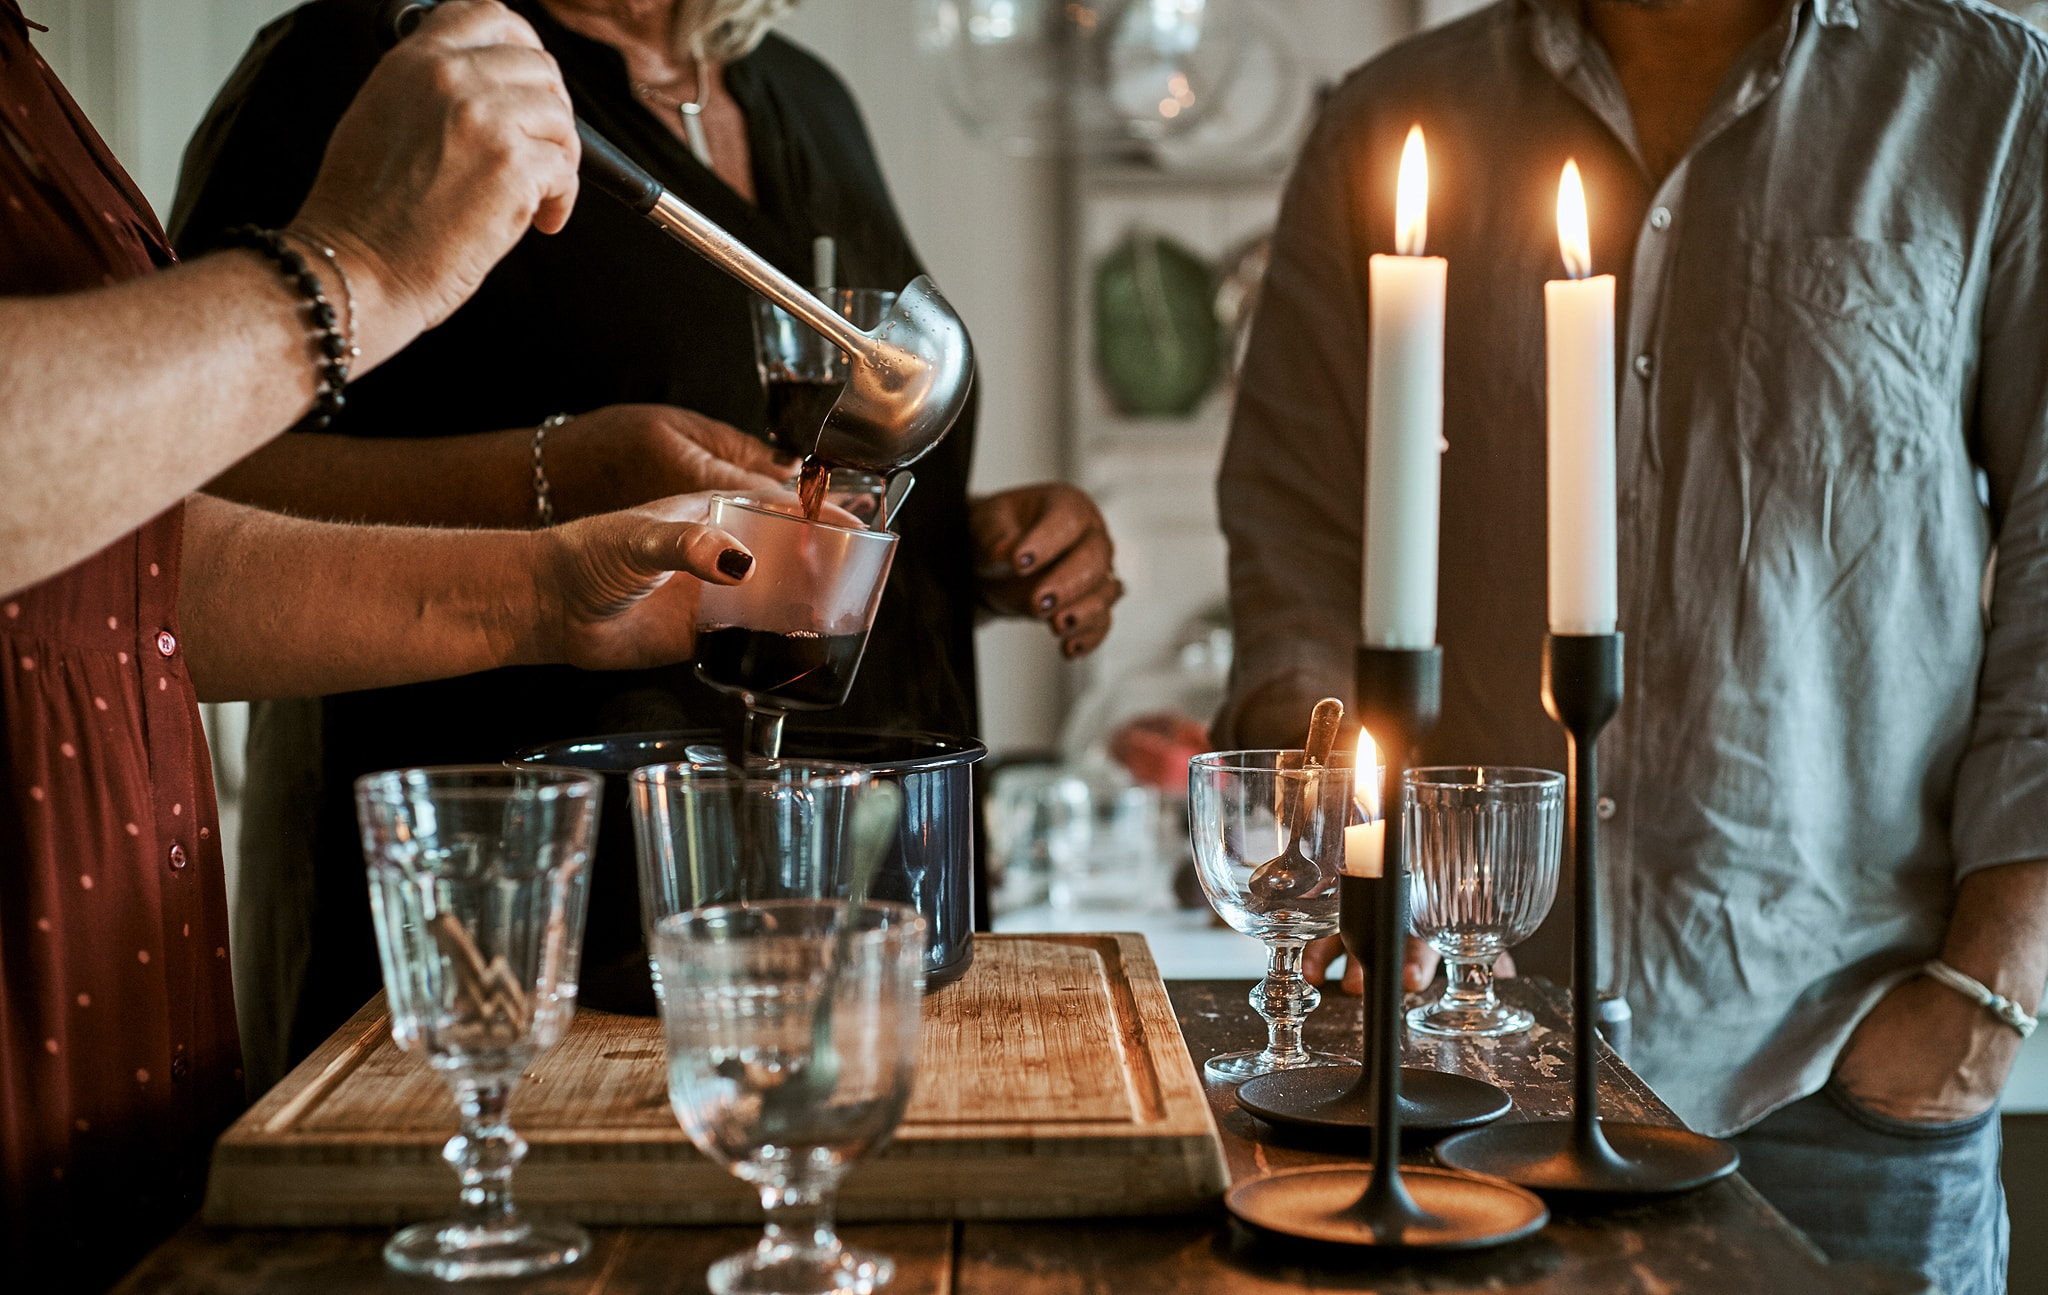 Home visit: host a happy house party